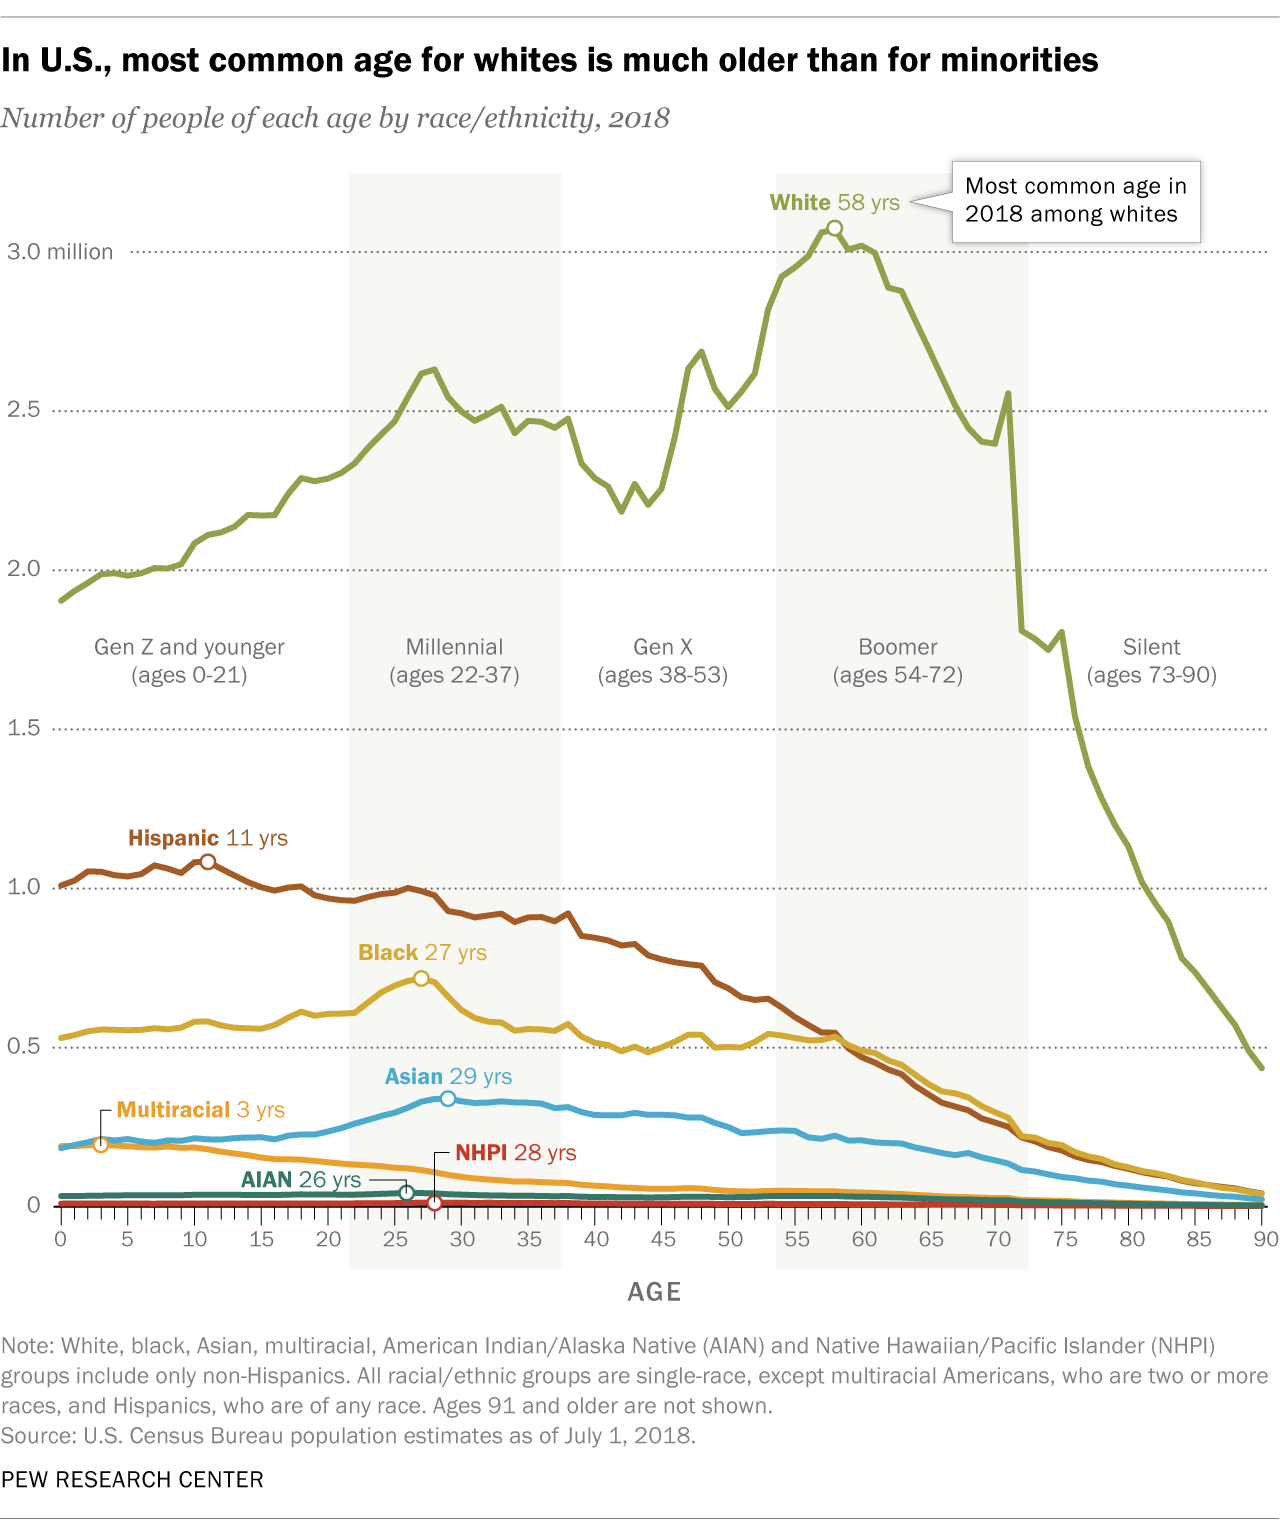 In U.S., most common age for whites is much older than for minorities